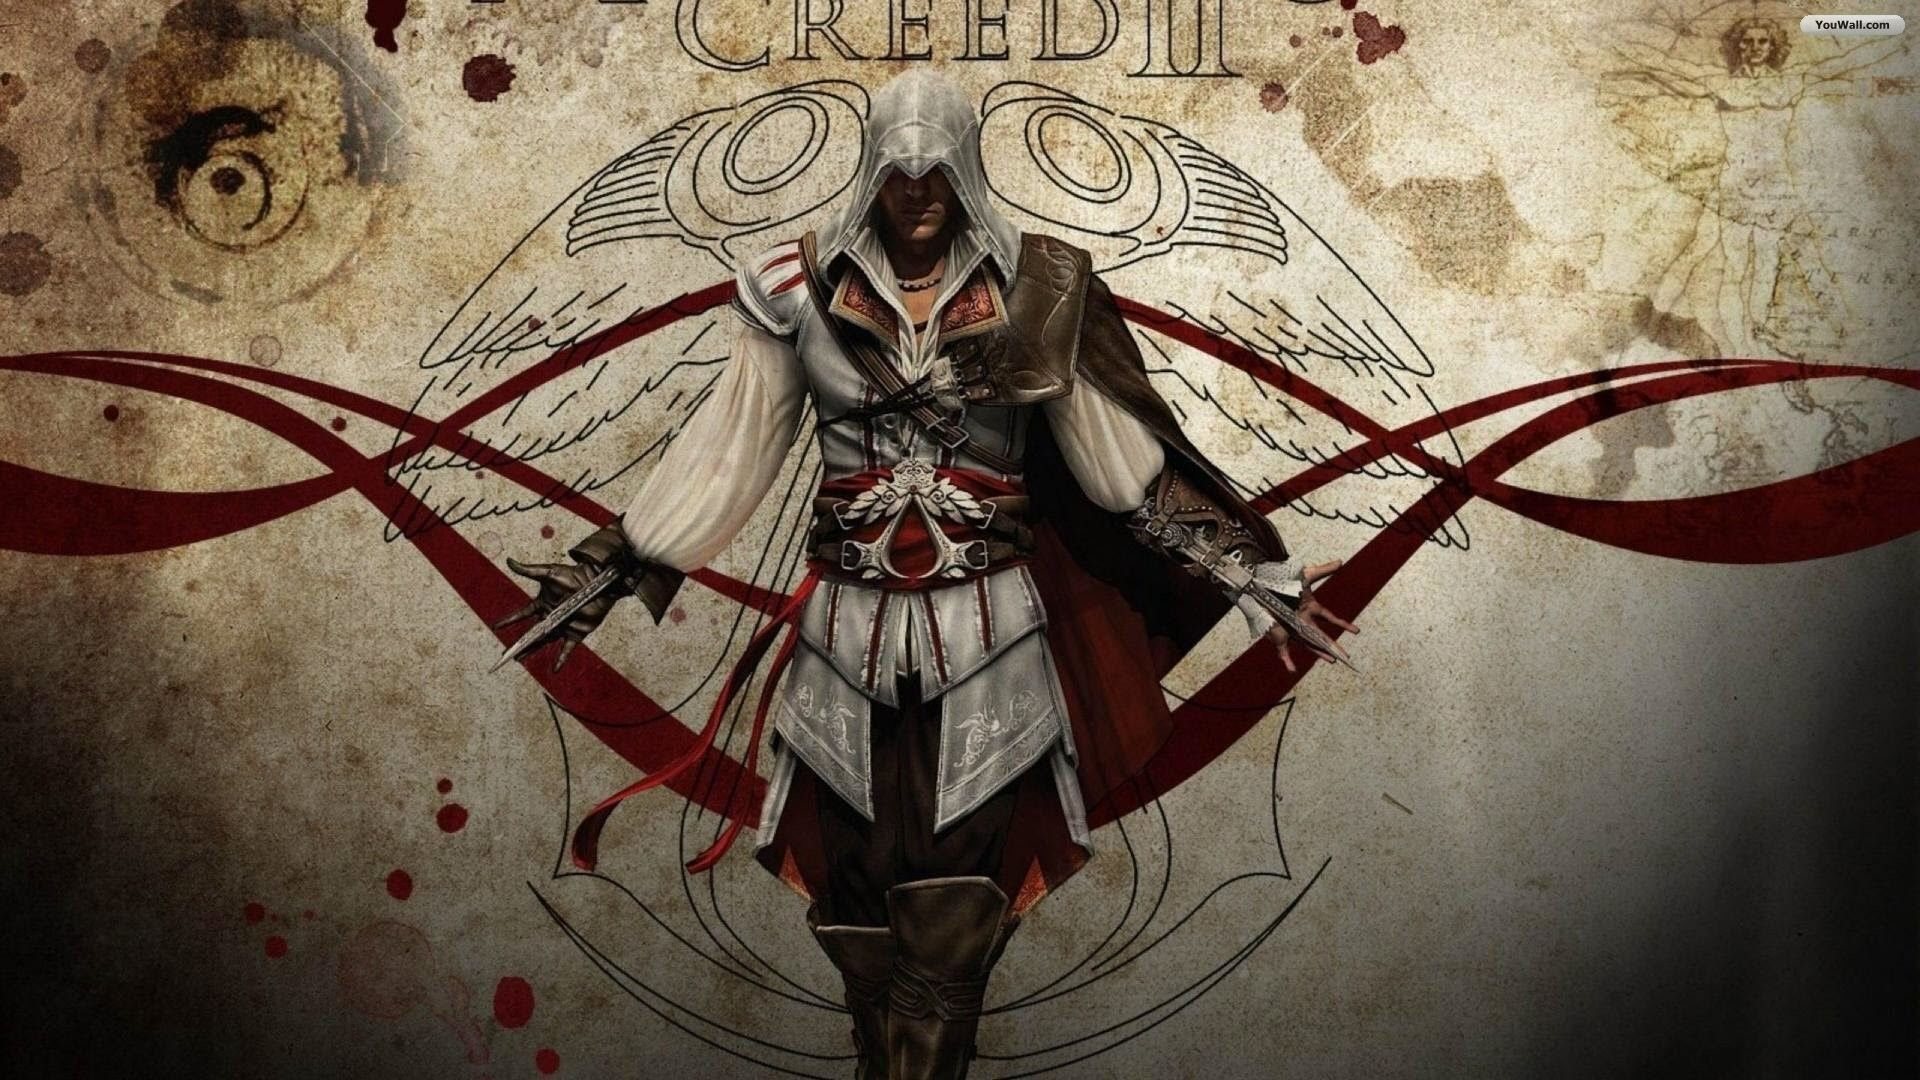 Assassin's Creed Wallpaper, Assassin 2 Wallpapers